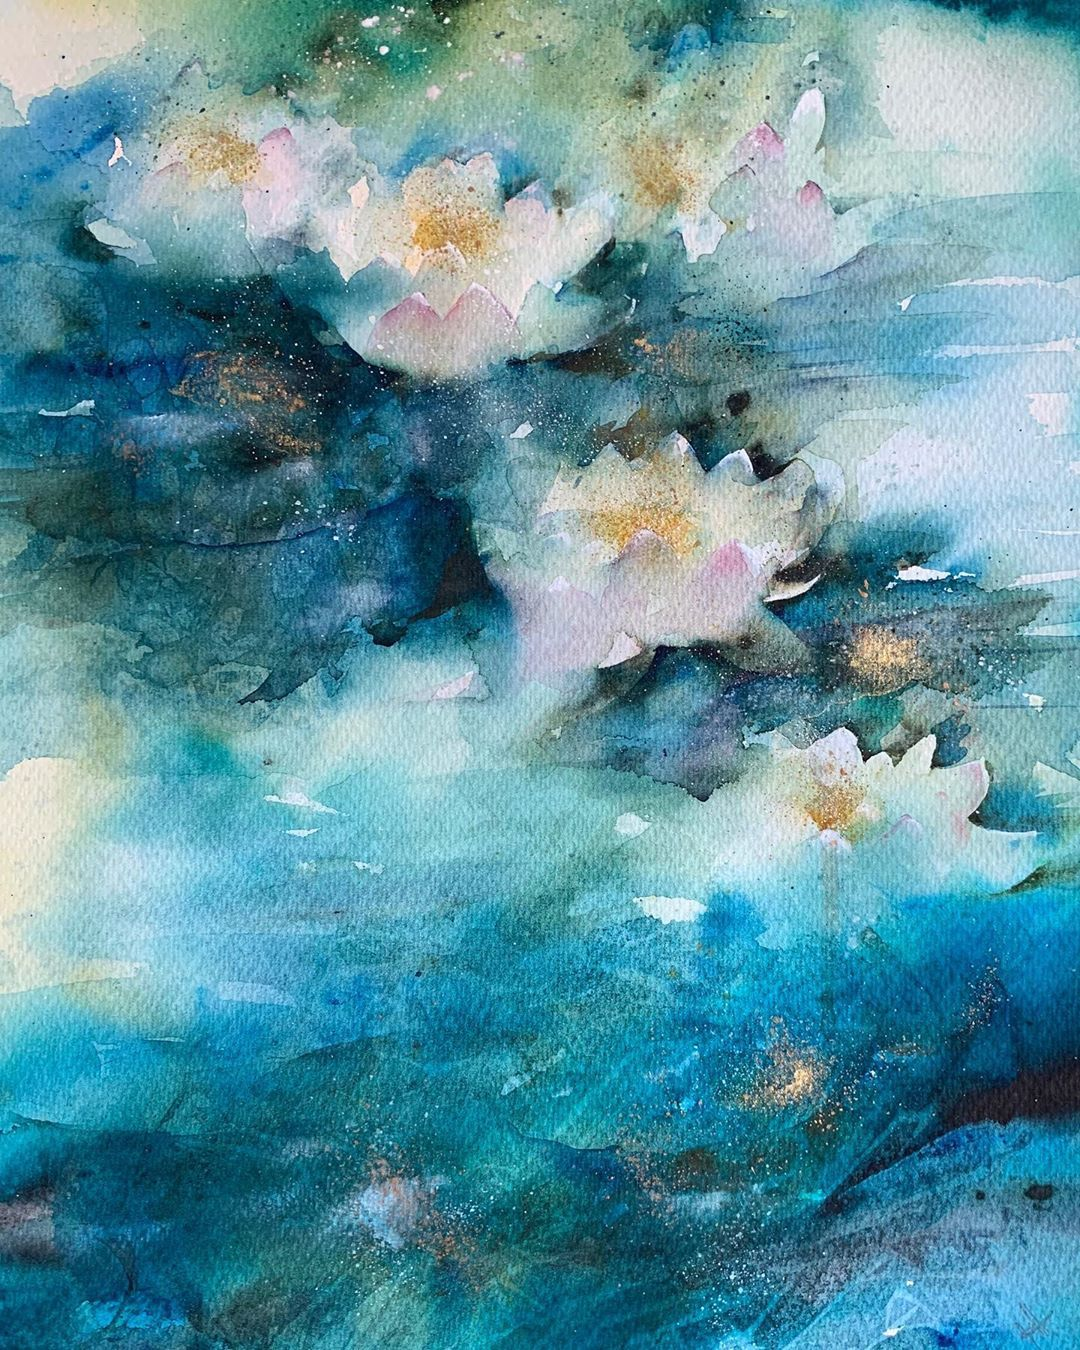 Jean Haines Watercolors On Instagram Quiet Relection